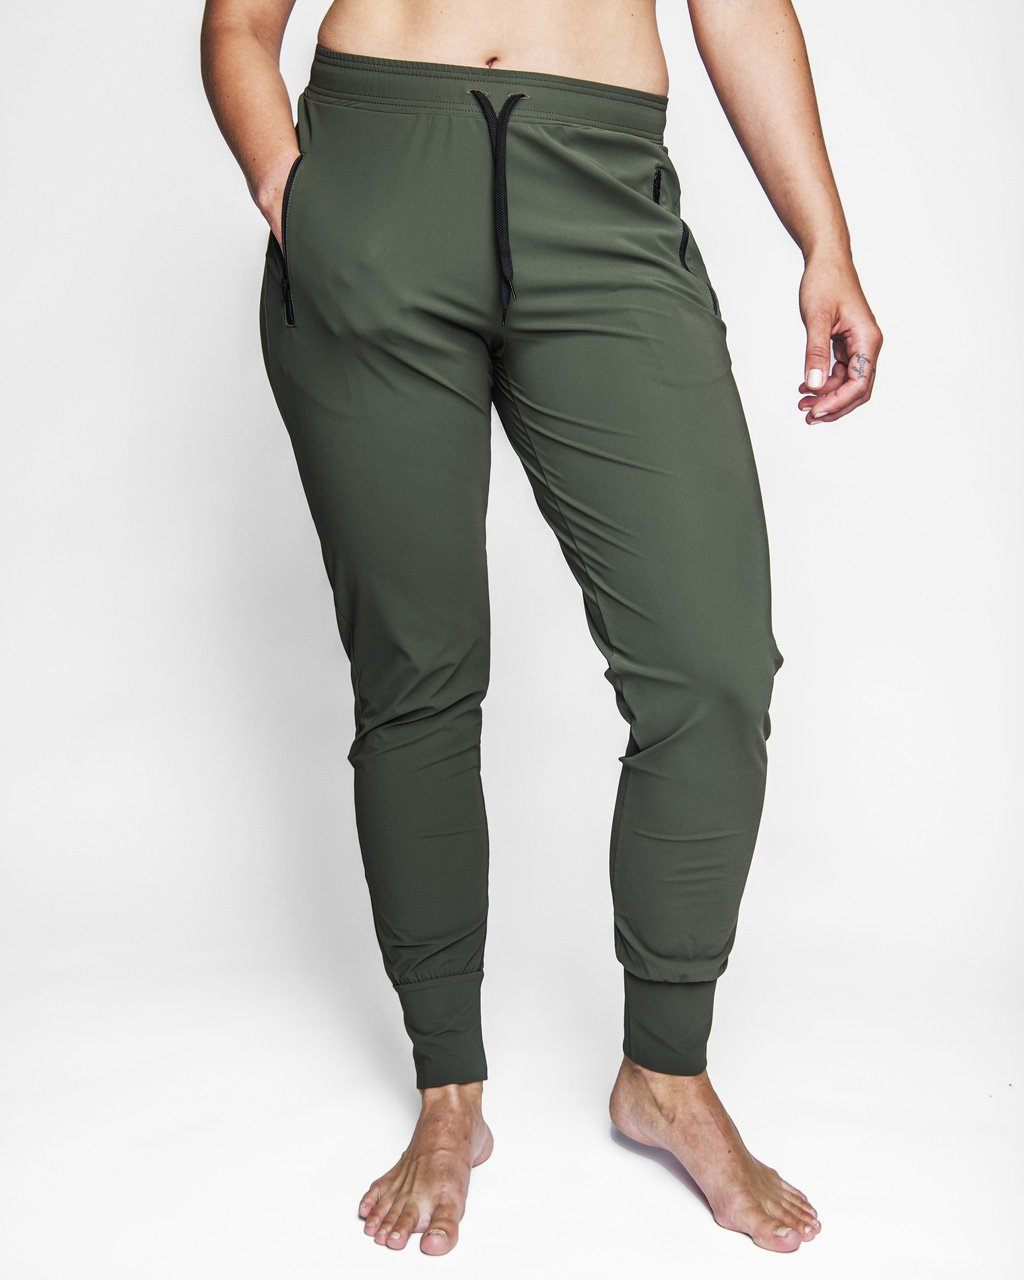 Népra - W's Yed Joggers - Training Pants - Weekendbee - sustainable sportswear